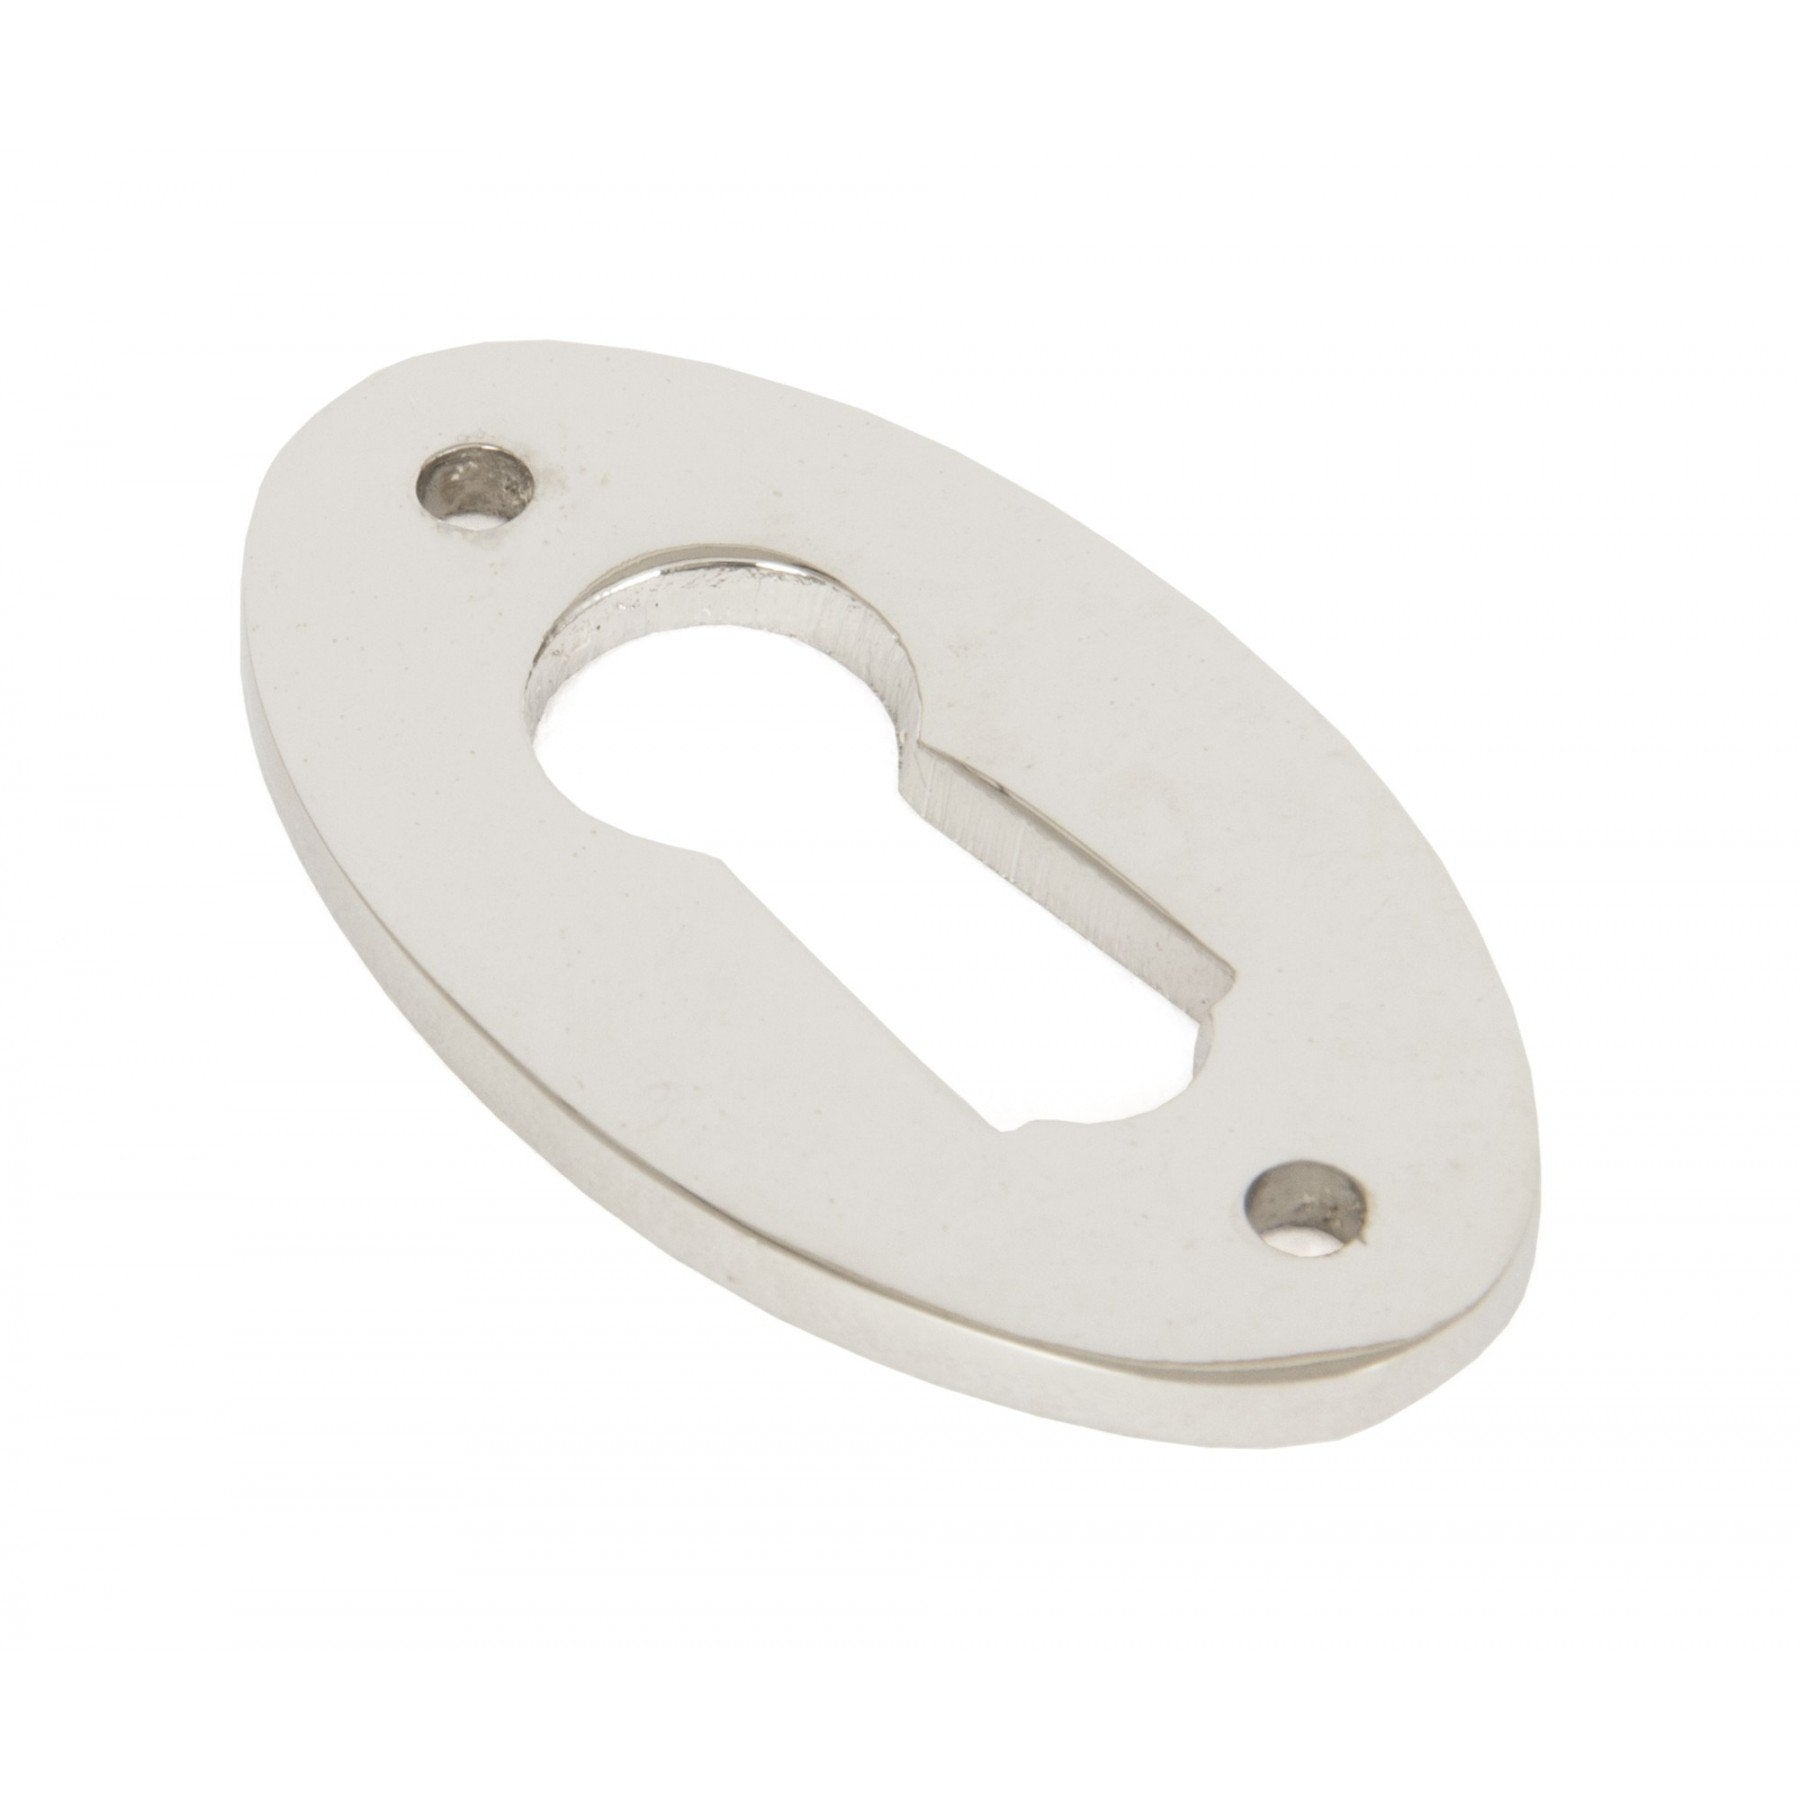 Polished Nickel Oval Escutcheon - No.42 Interiors